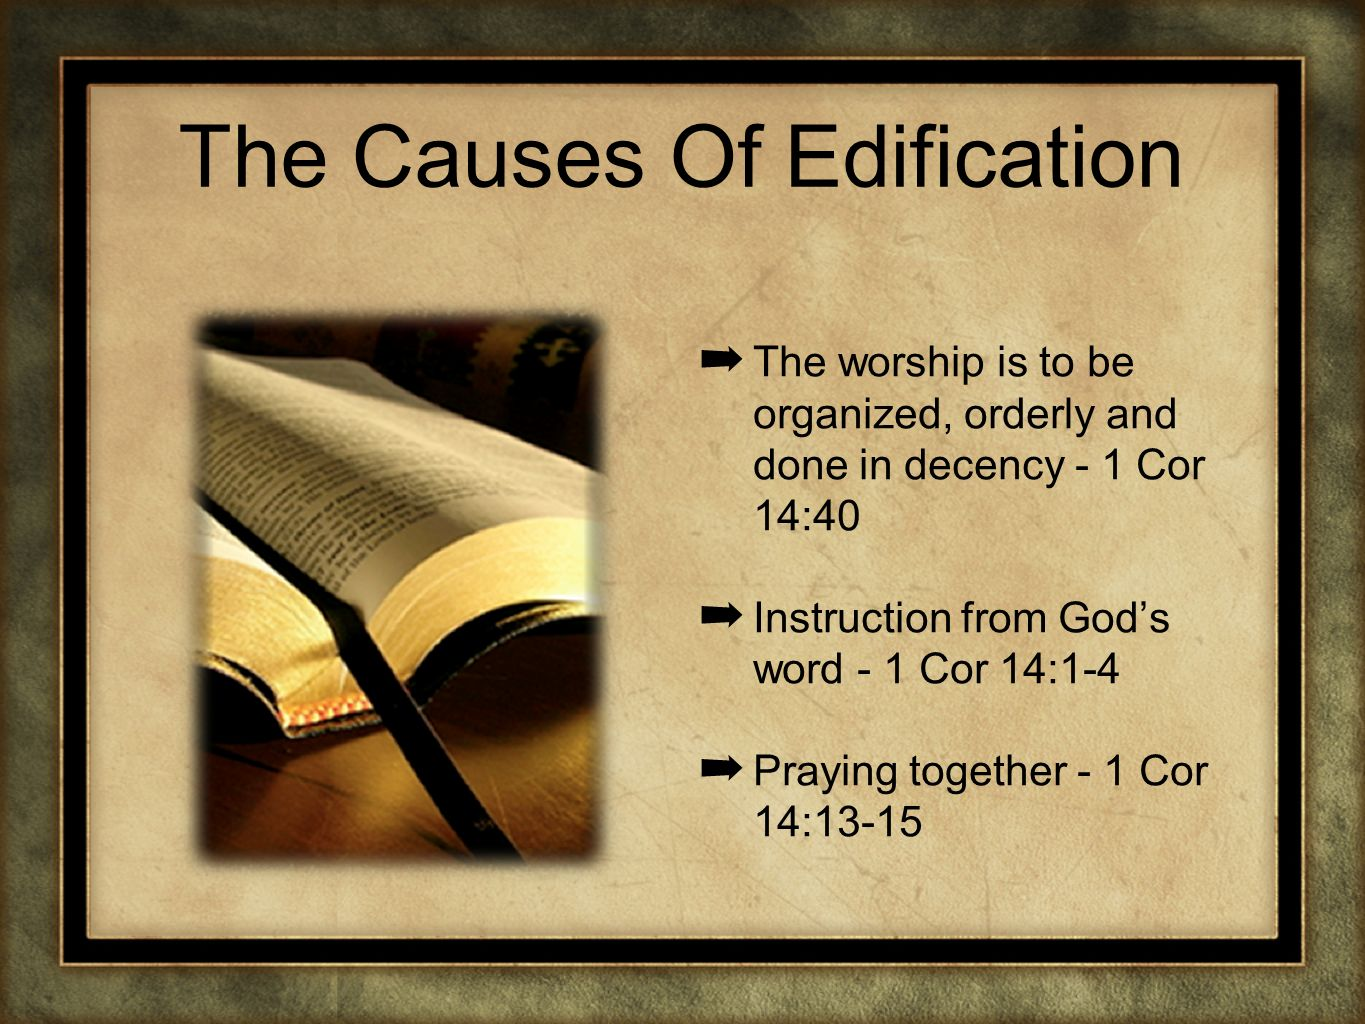 The Causes Of Edification The worship is to be organized, orderly and done in decency - 1 Cor 14:40 Instruction from Gods word - 1 Cor 14:1-4 Praying